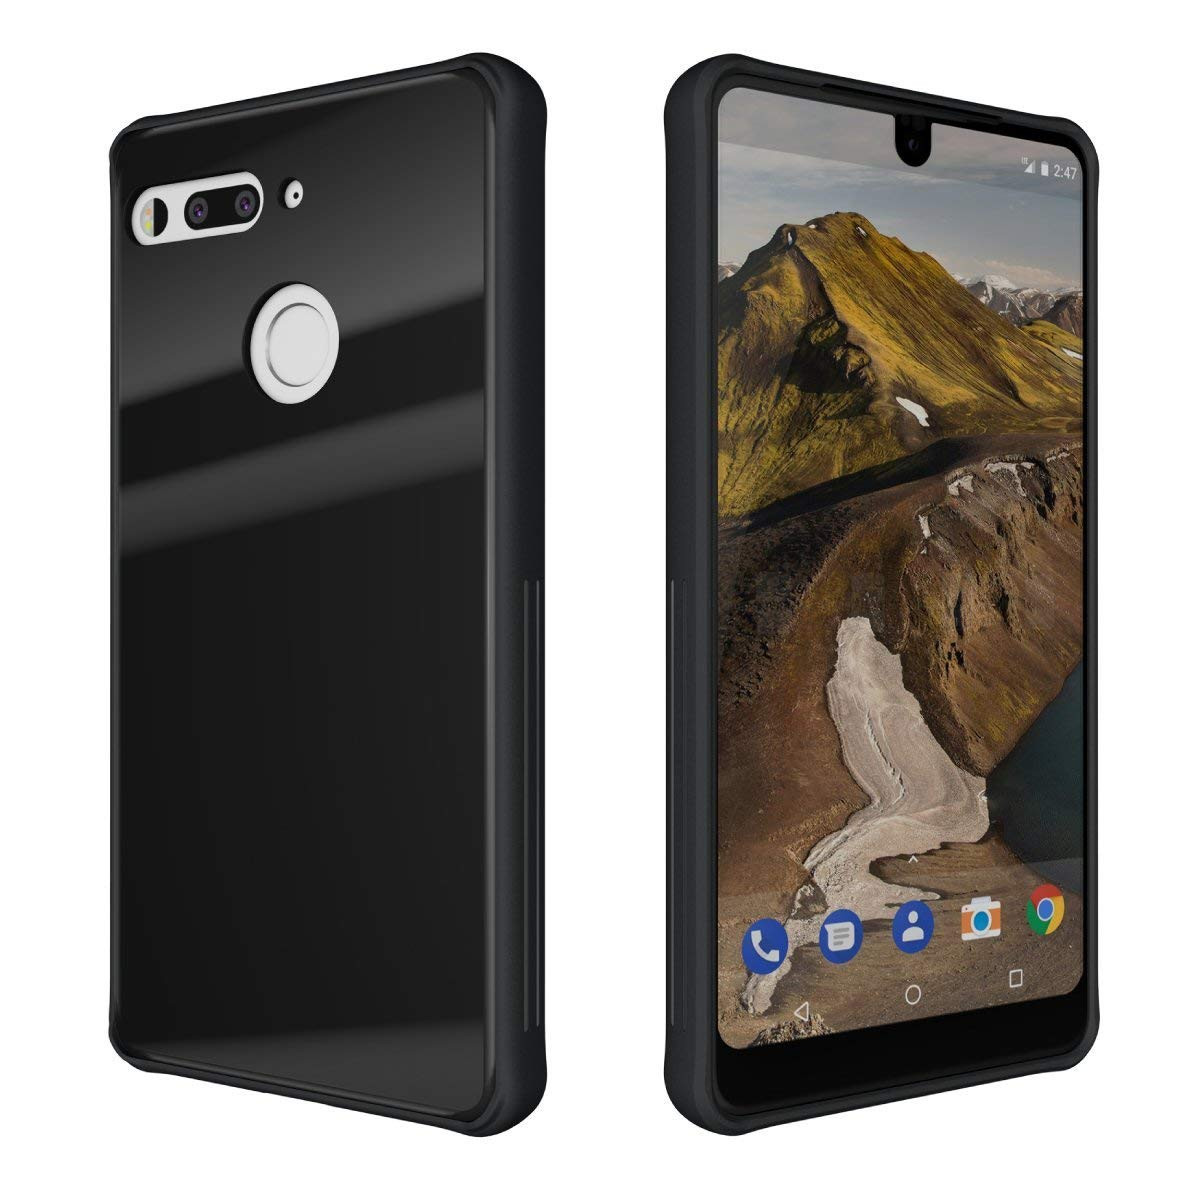 wholesale glass vases international coupon code of amazon com essential phone ph 1 case tudia ceramic feel with regard to amazon com essential phone ph 1 case tudia ceramic feel lightweight glost tpu bumper shock absorption cover featuring tempered glass back panel for